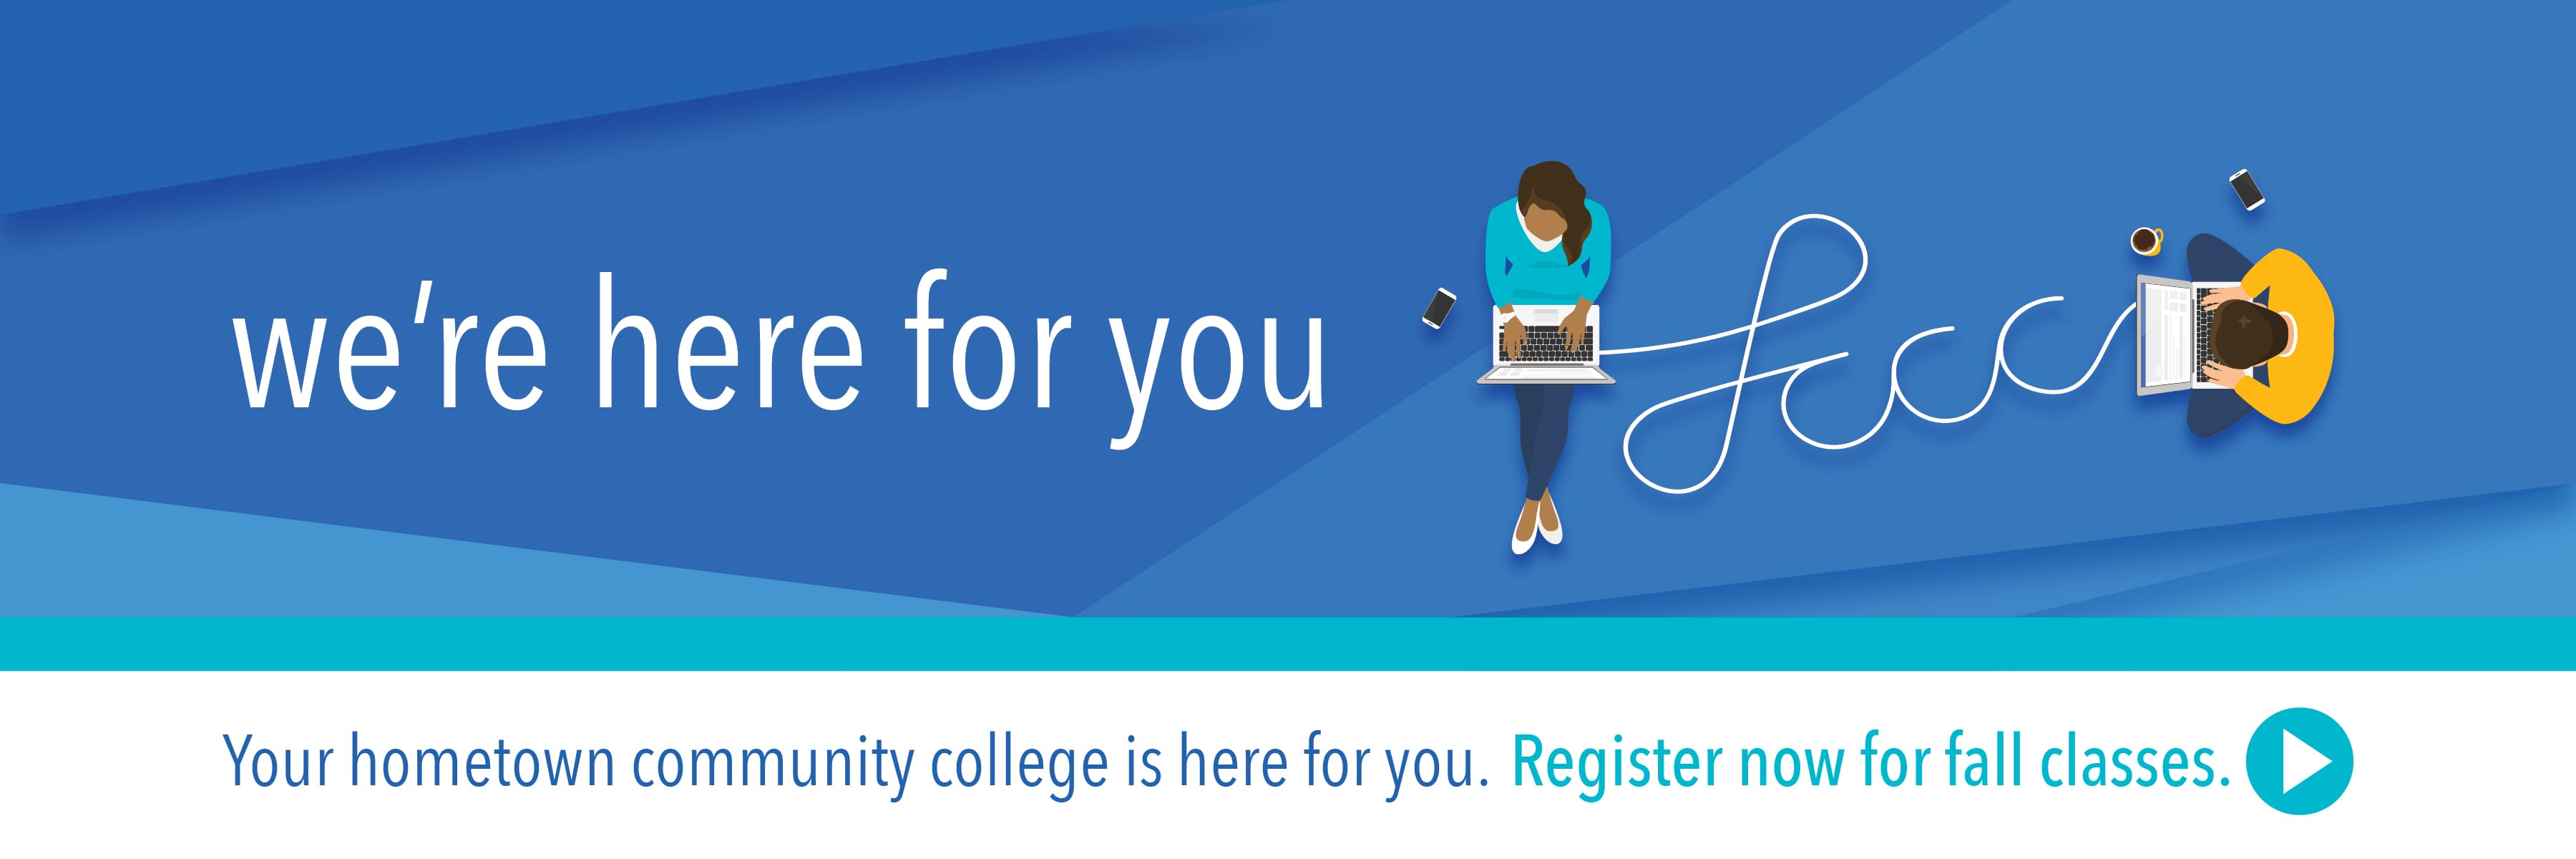 We're here for you. Register now for fall semester